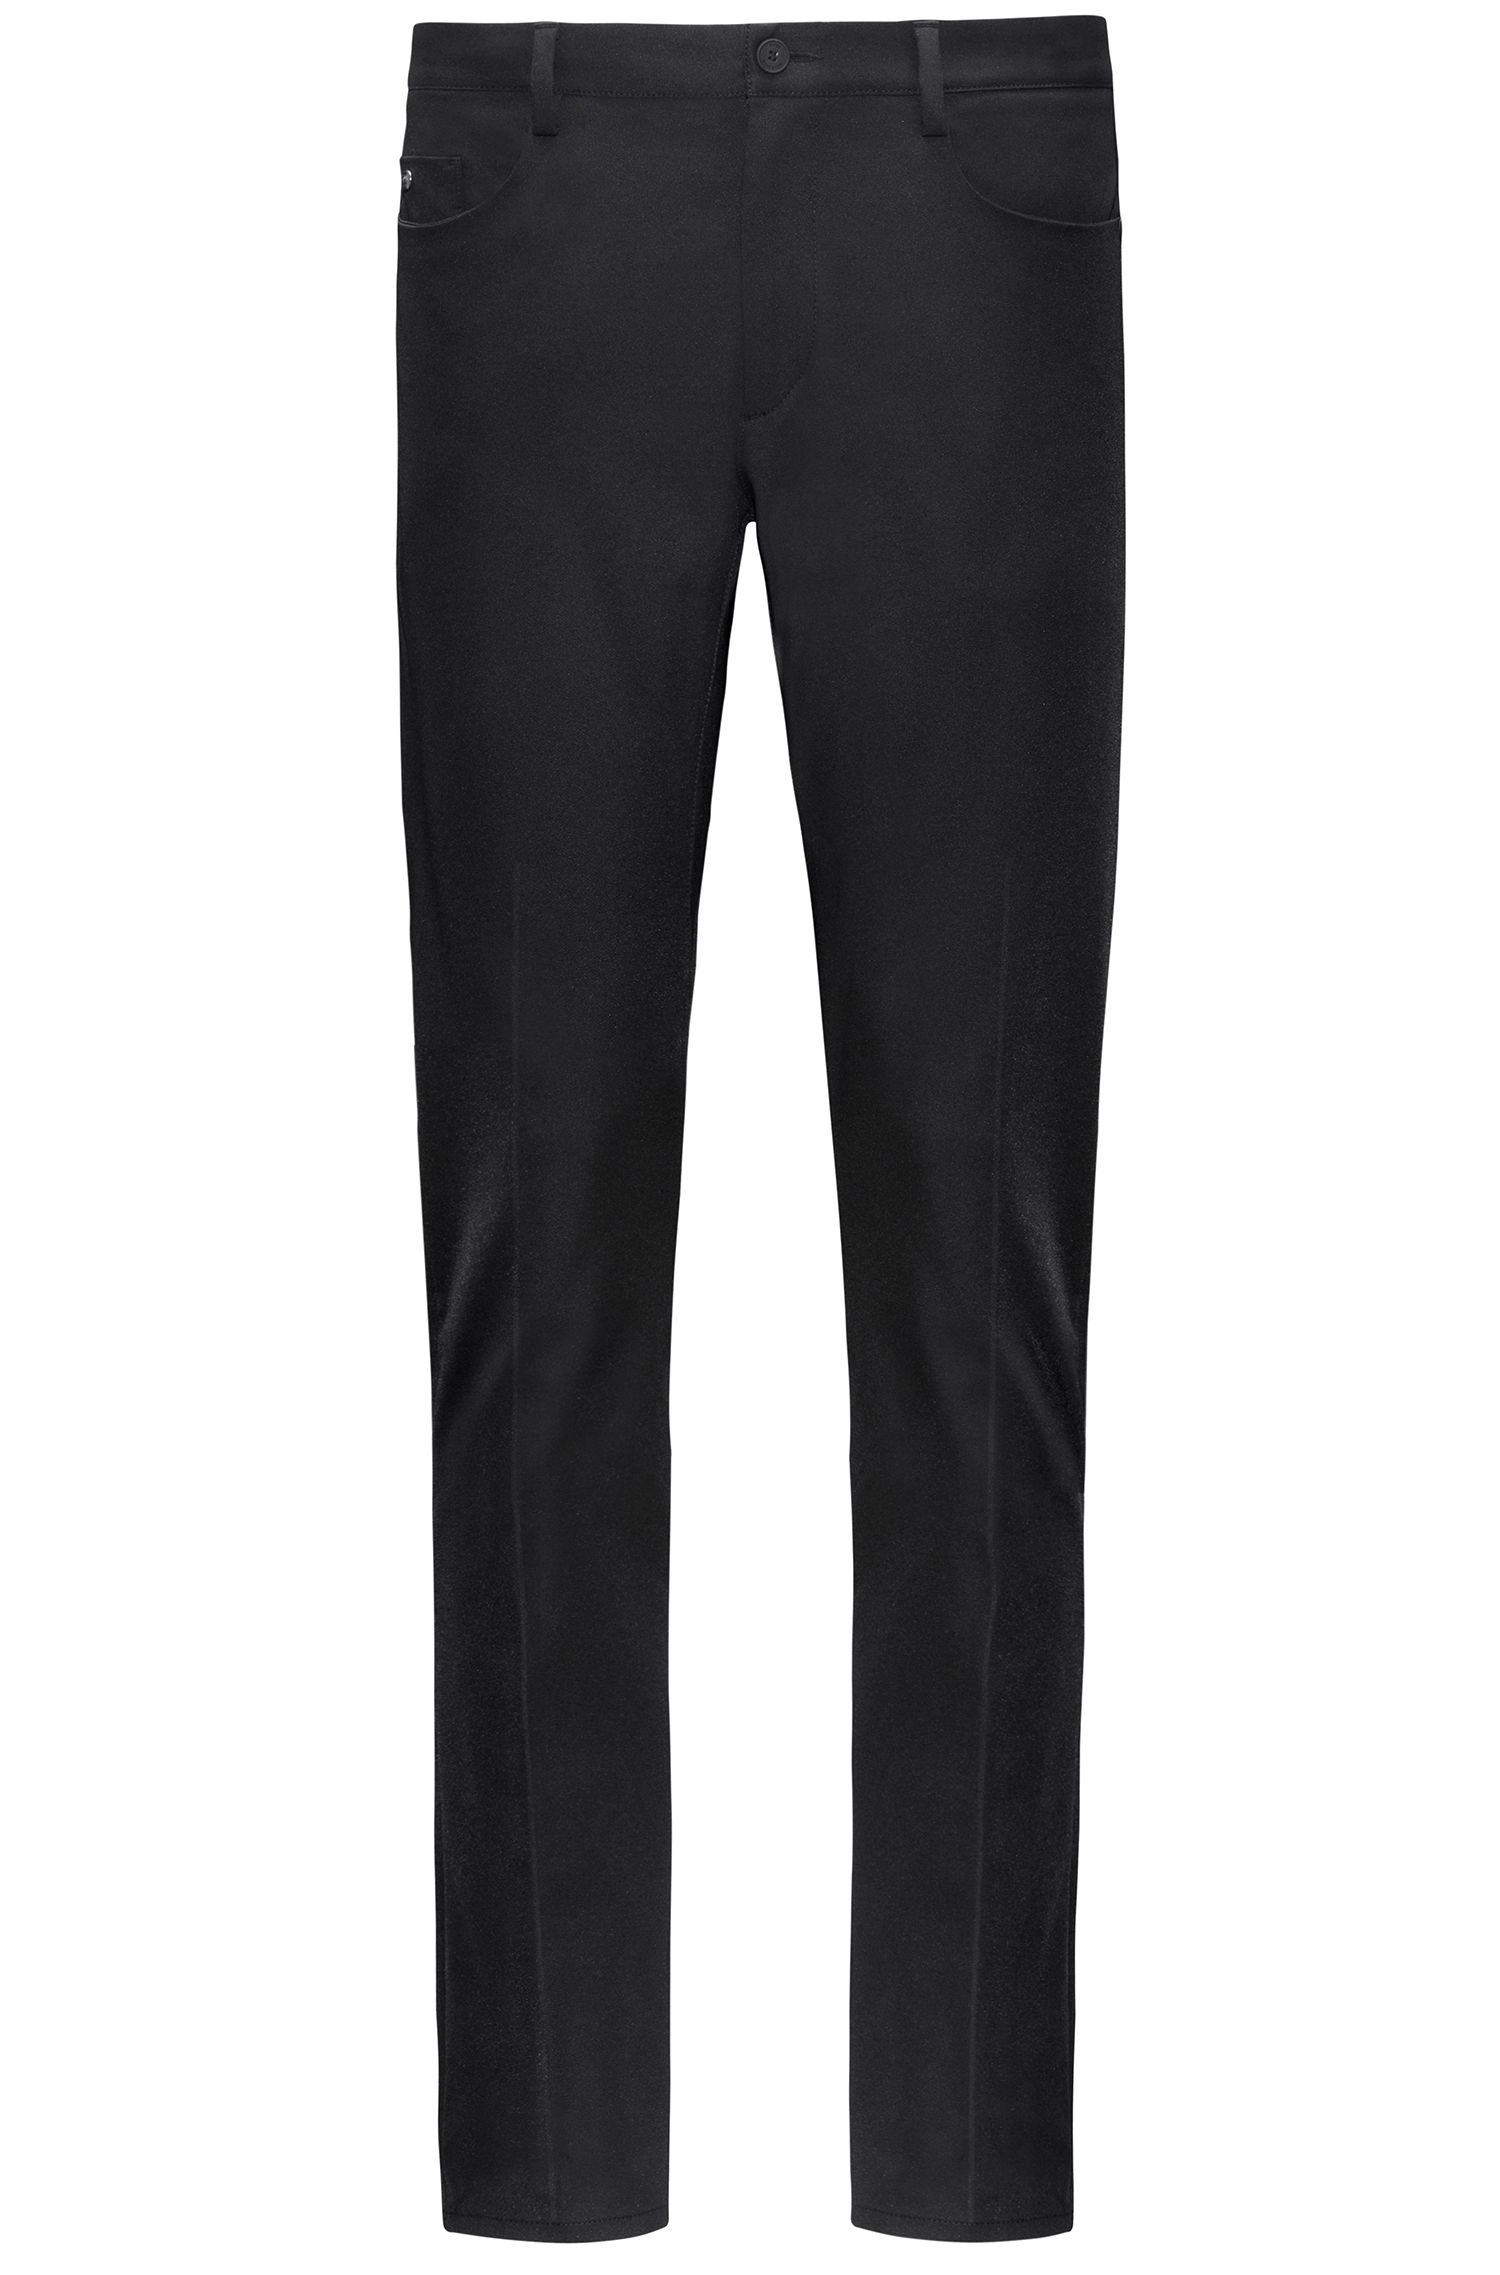 'Hapron' | Extra Slim Fit, Stretch Athletic Pants